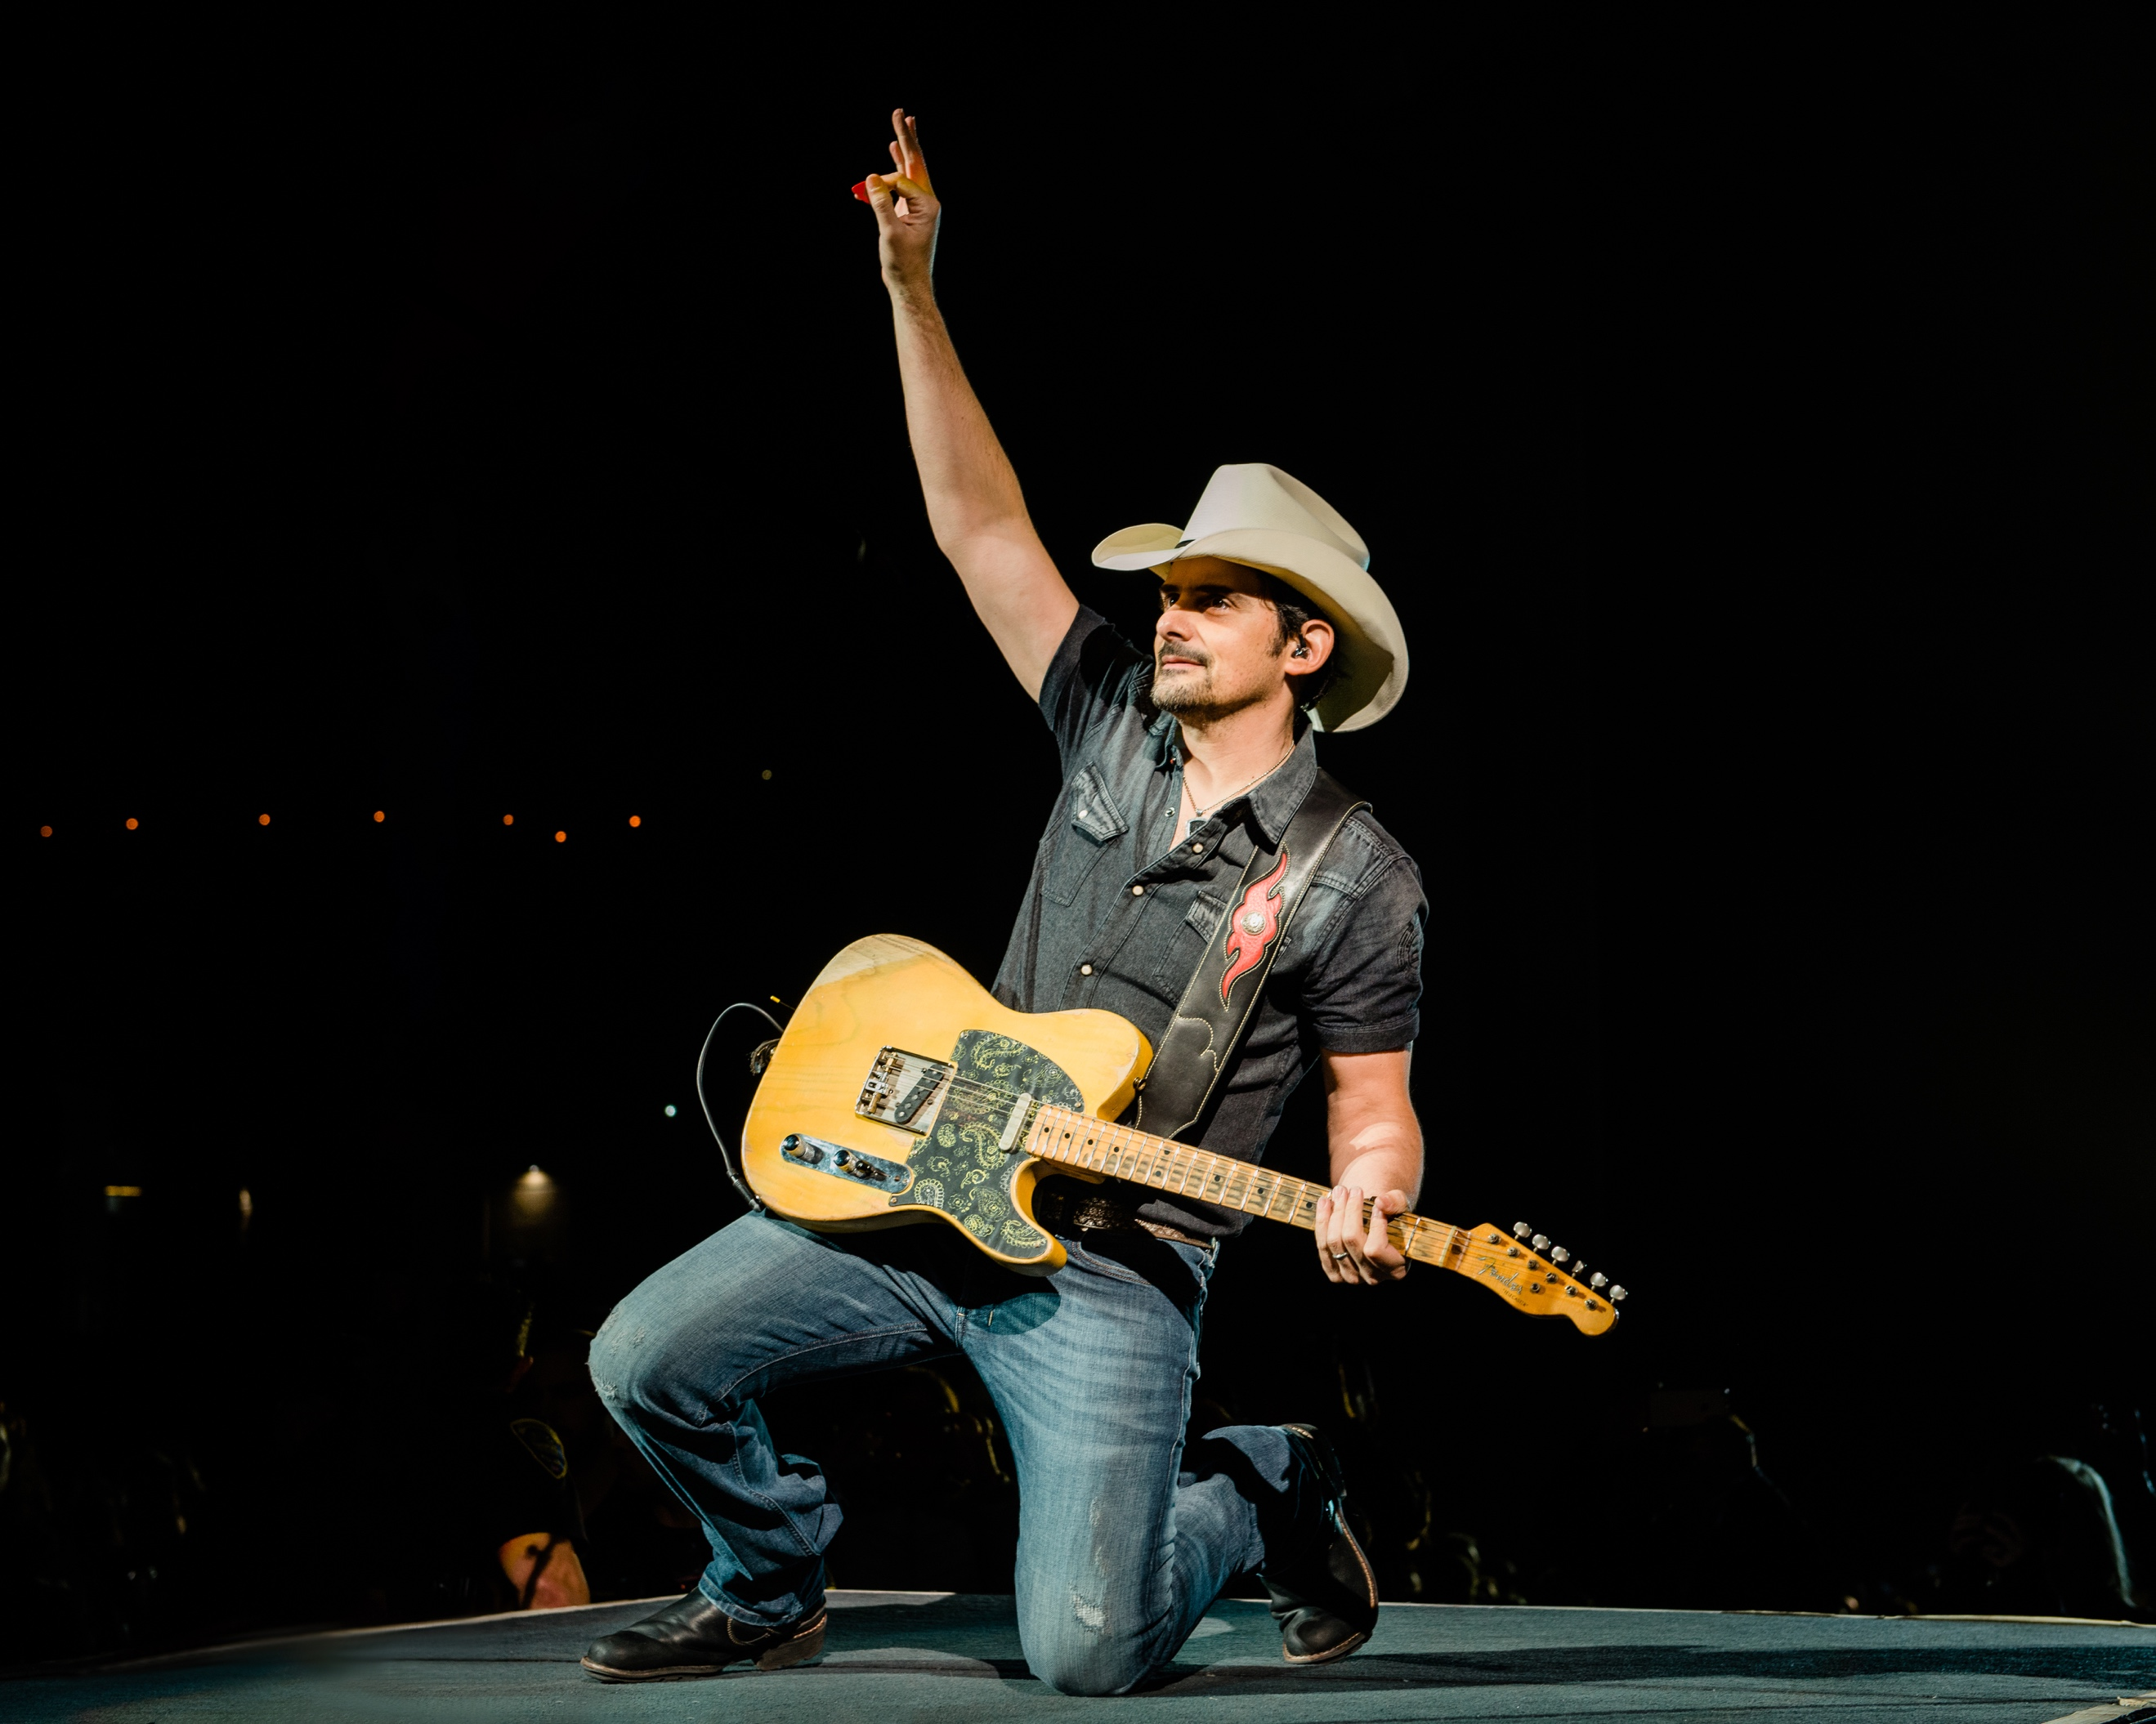 Brad Paisley Announces Tour 2021